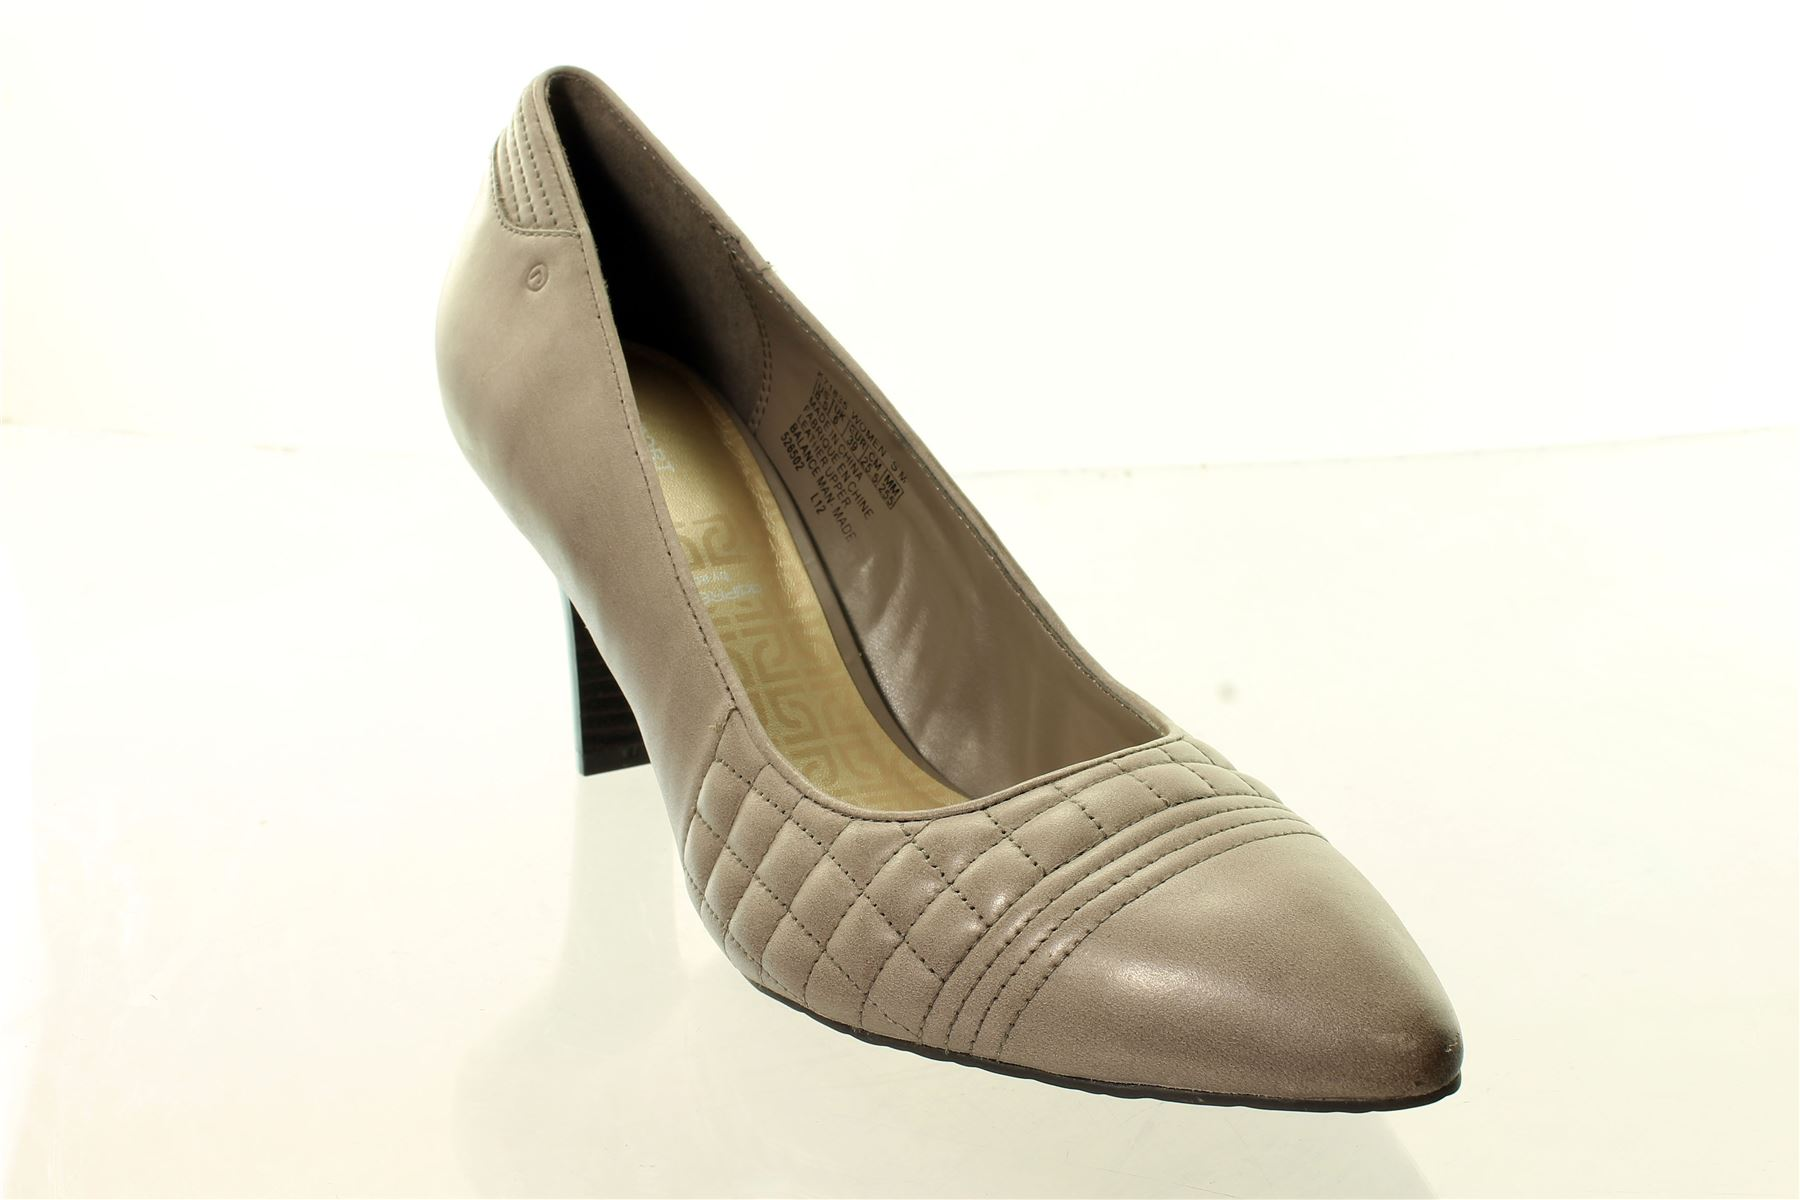 rockport womens shoes heels various styles rrp 163 35 163 50